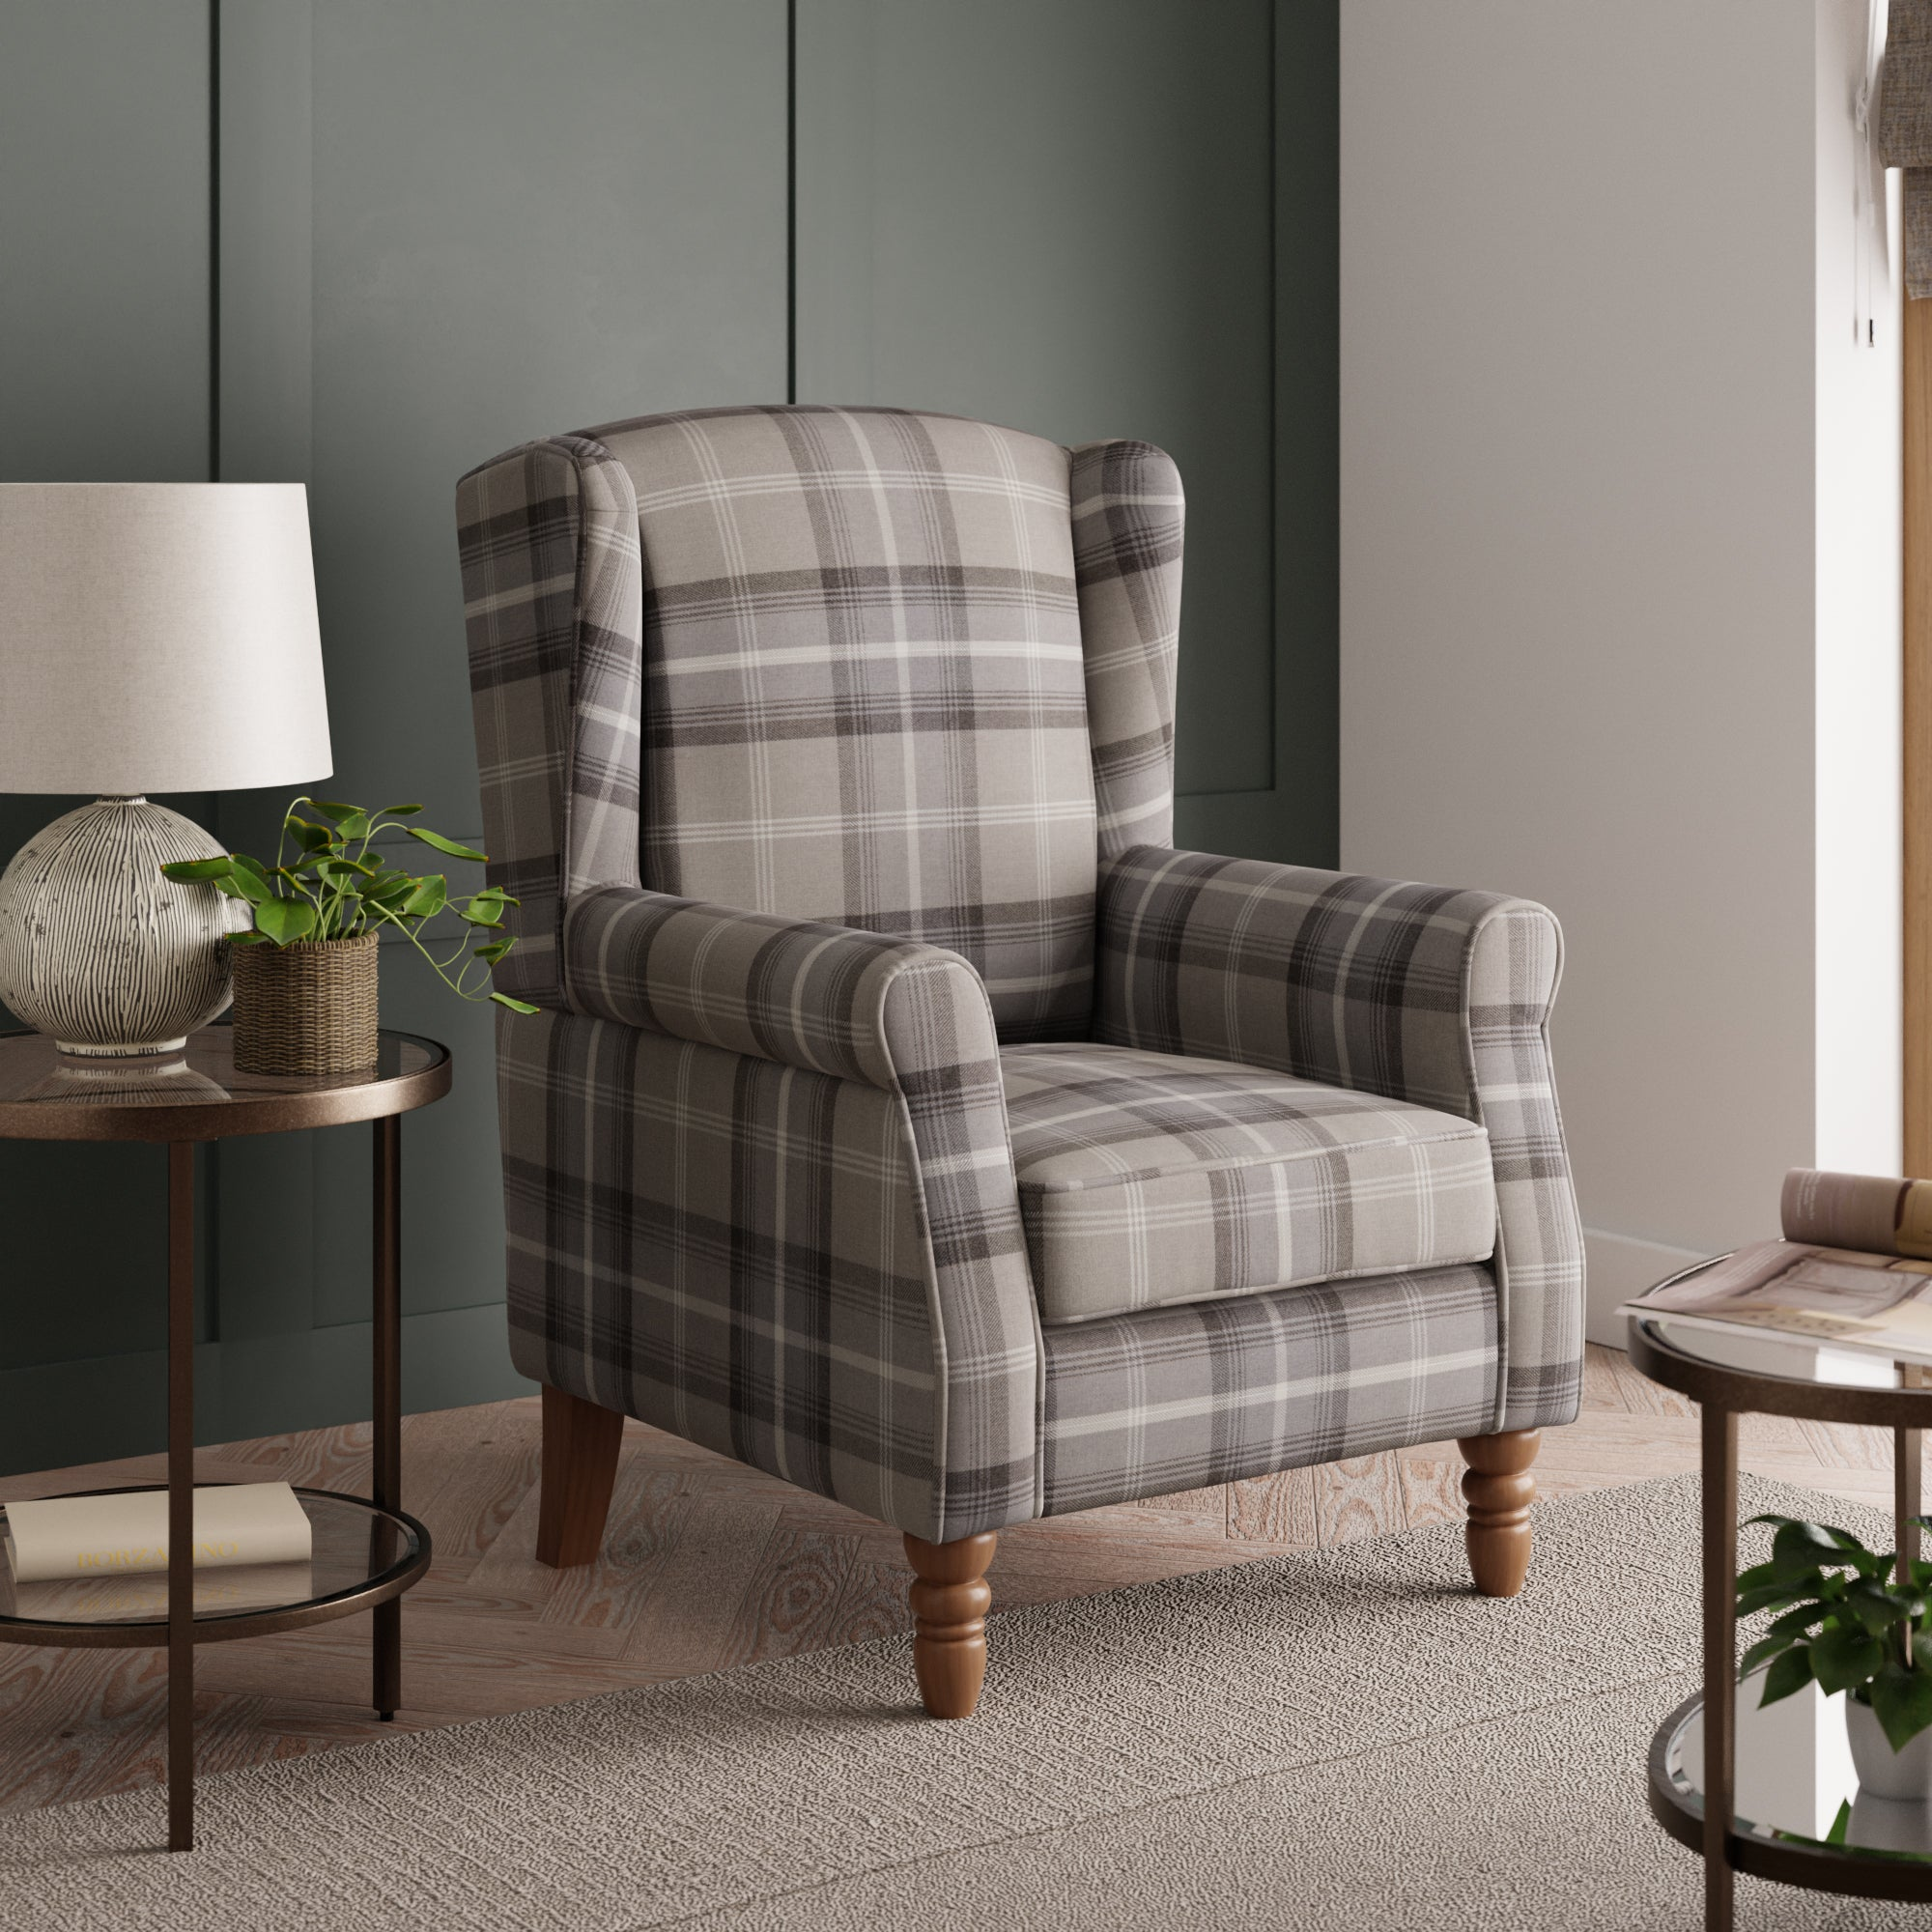 Oswald Check Wingback Armchair - Grey Grey and White